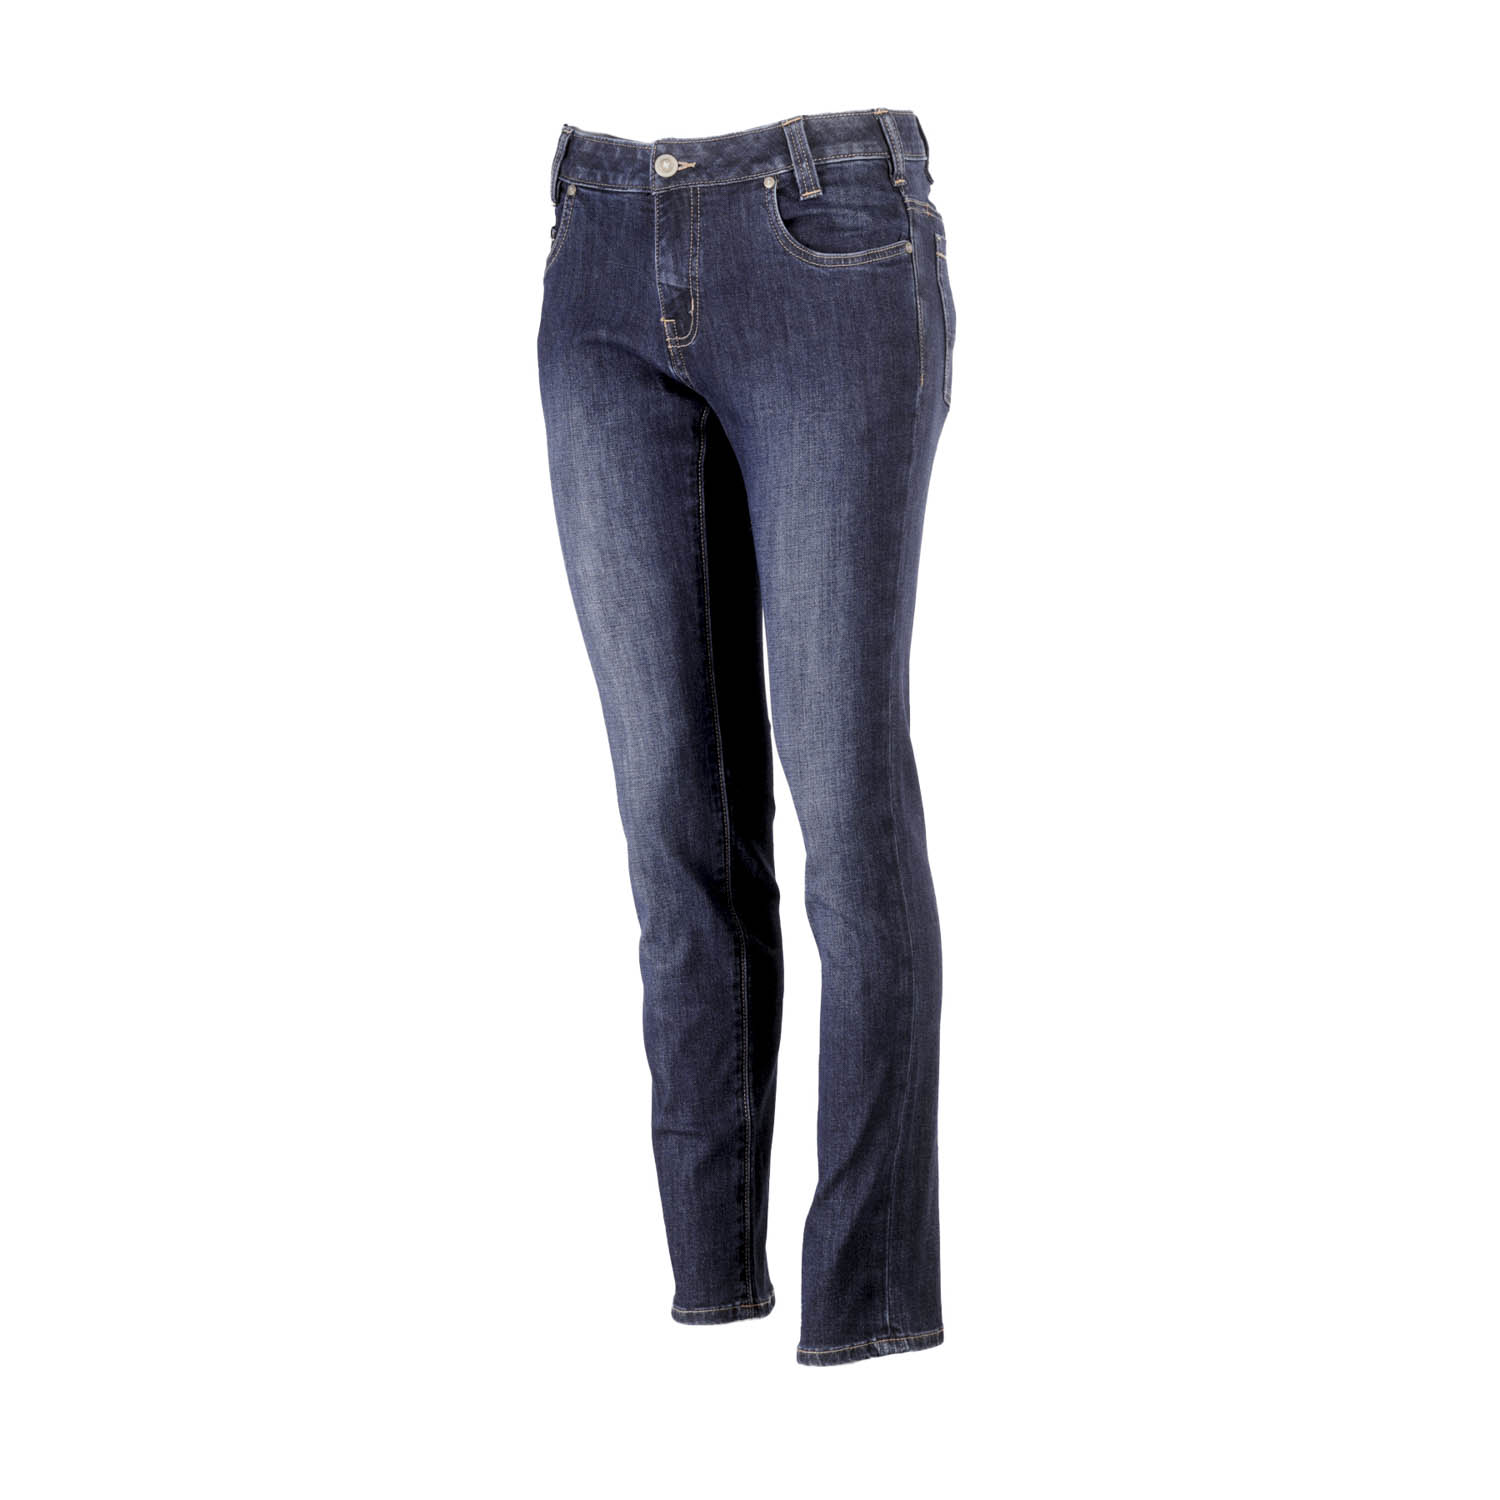 Vertx Women's Burrell Stretch Jeans